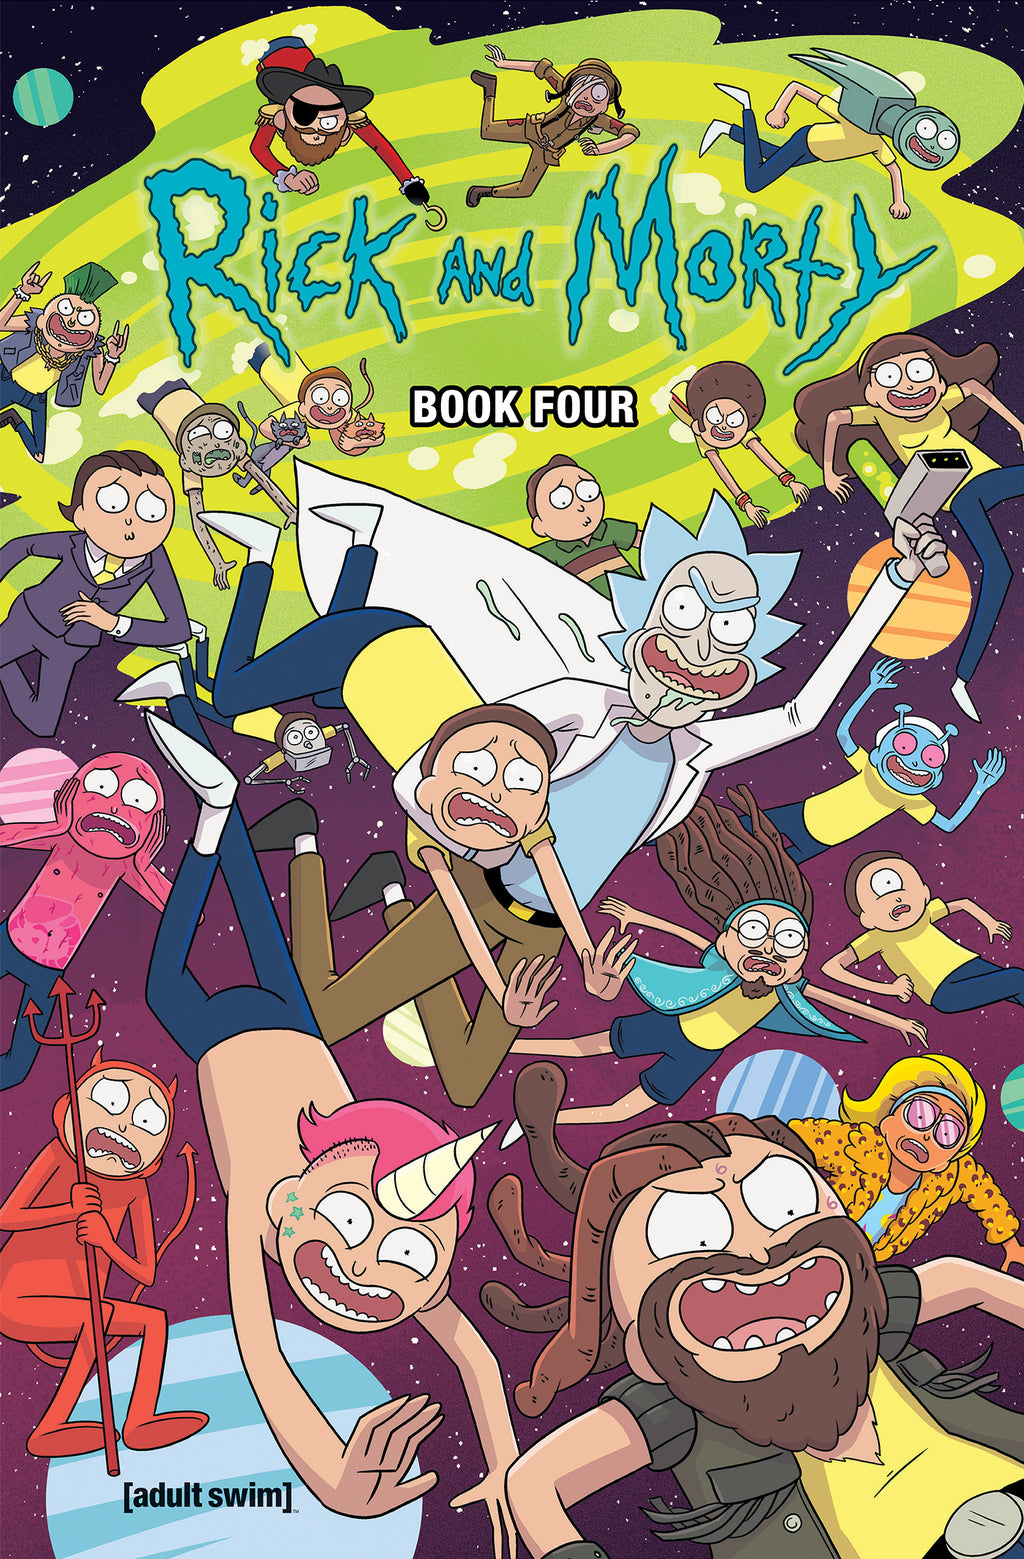 Rick and Morty Hardcover Book 4